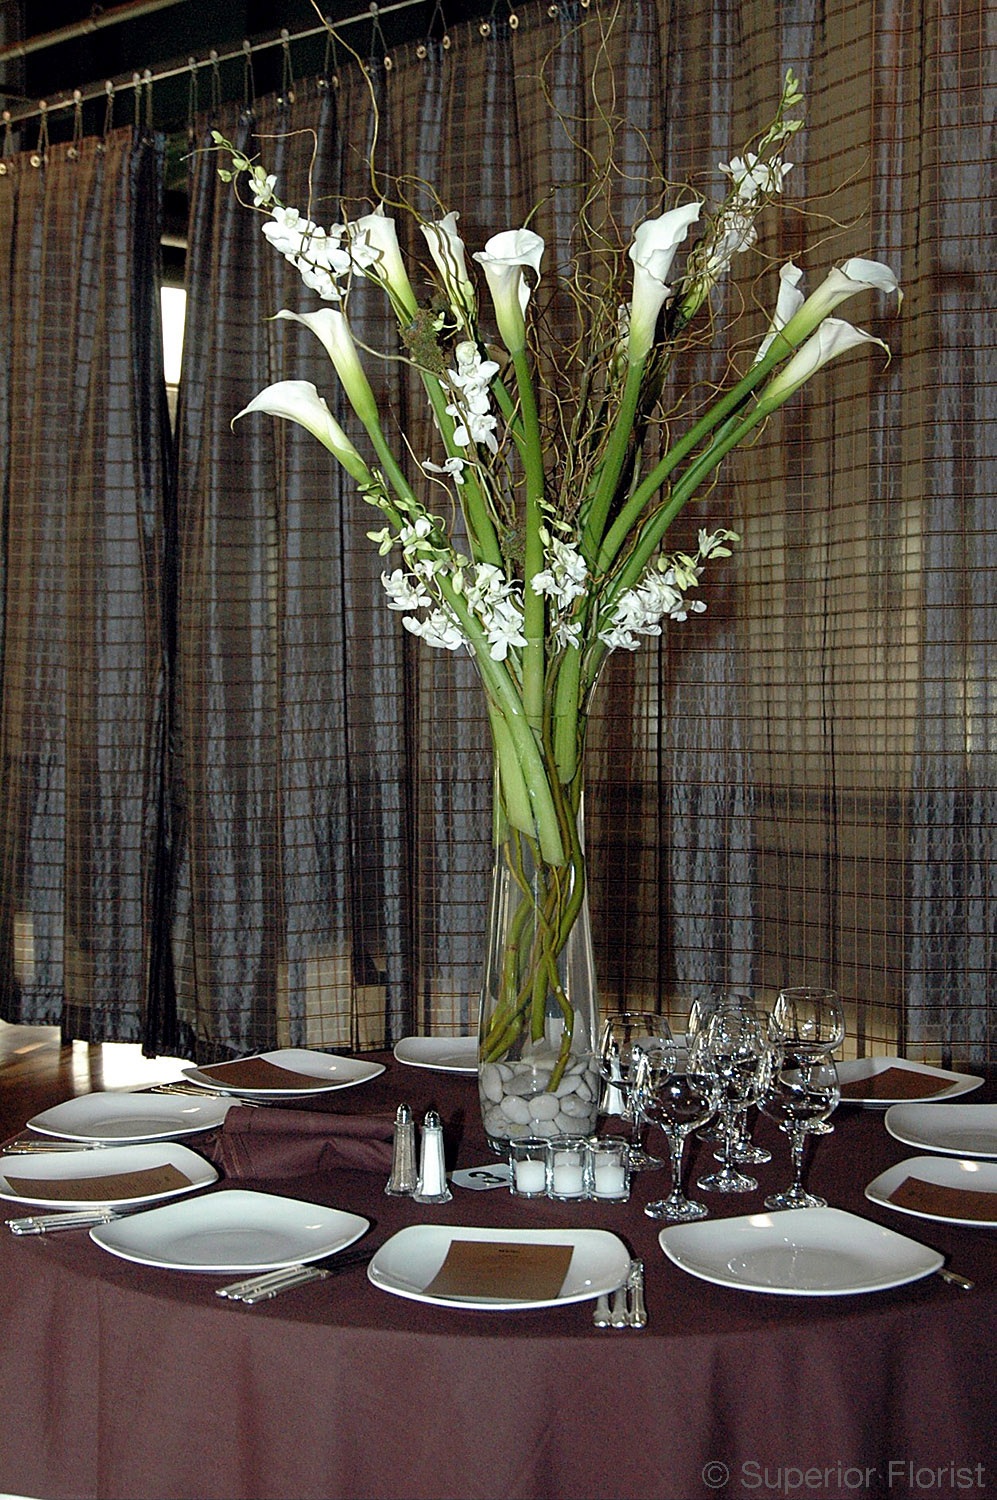 Superior Florist – Centerpieces:  Curly willows, Callas and Dendrobium orchids arranged in a fluted, clear glass vase with river rocks in base.